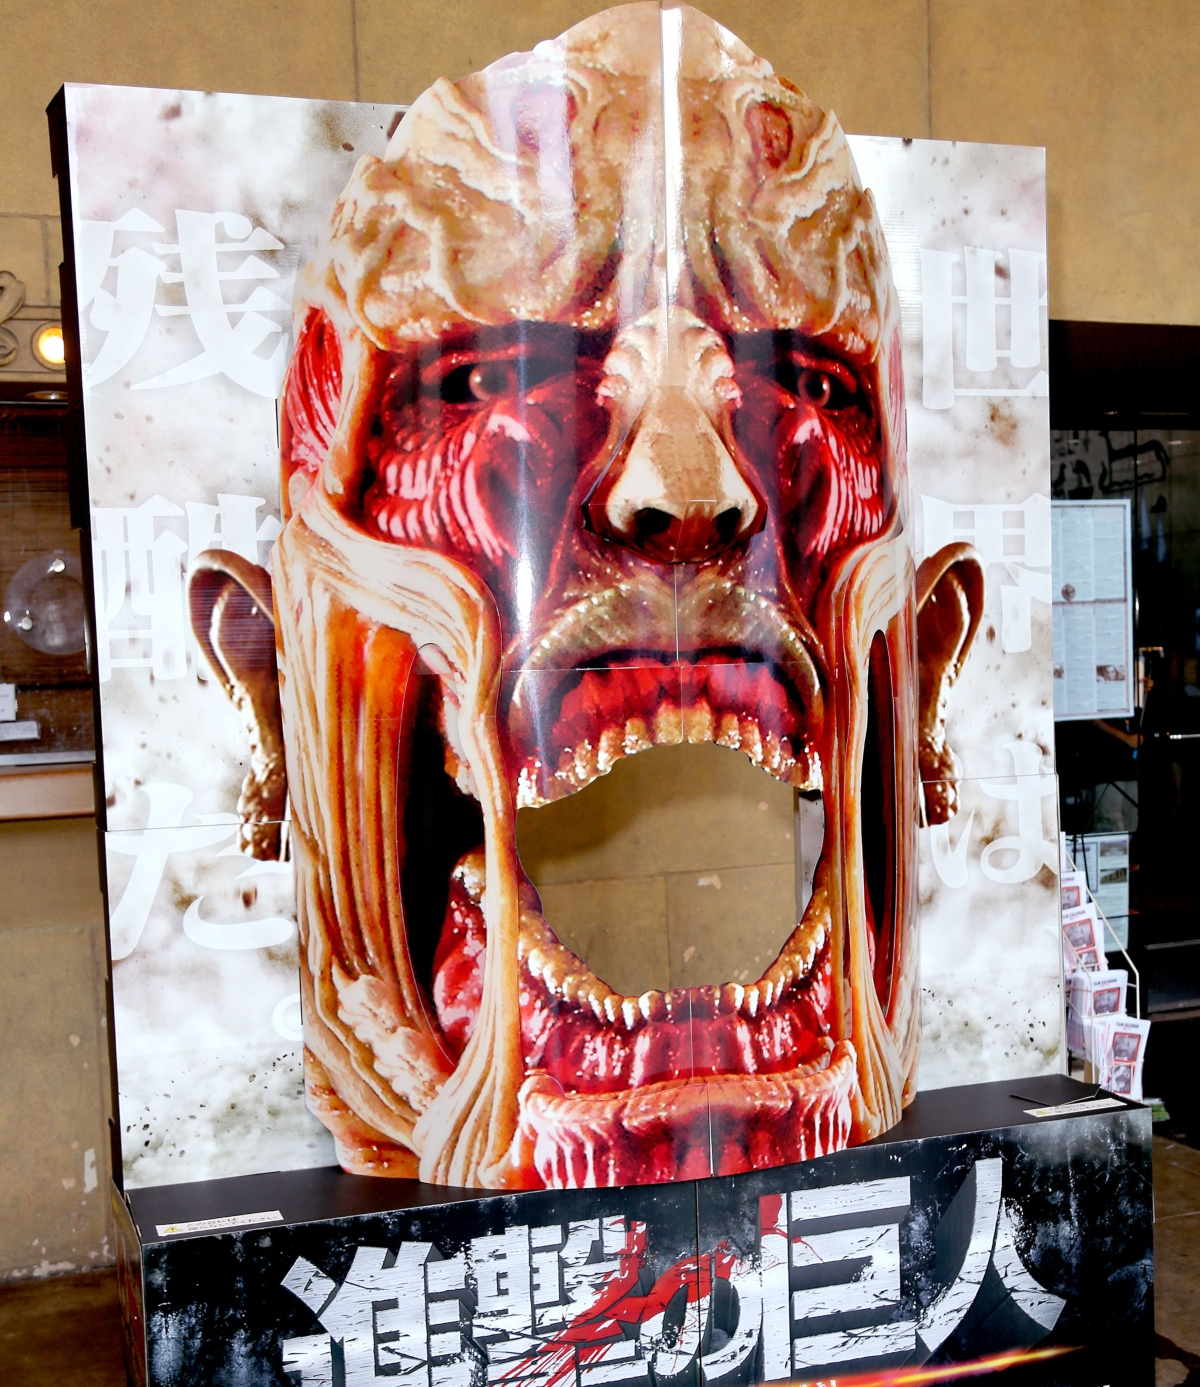 Attack On Titan Season 4 5 Details Not To Miss After Episode 5 attack on titan season 4 5 details